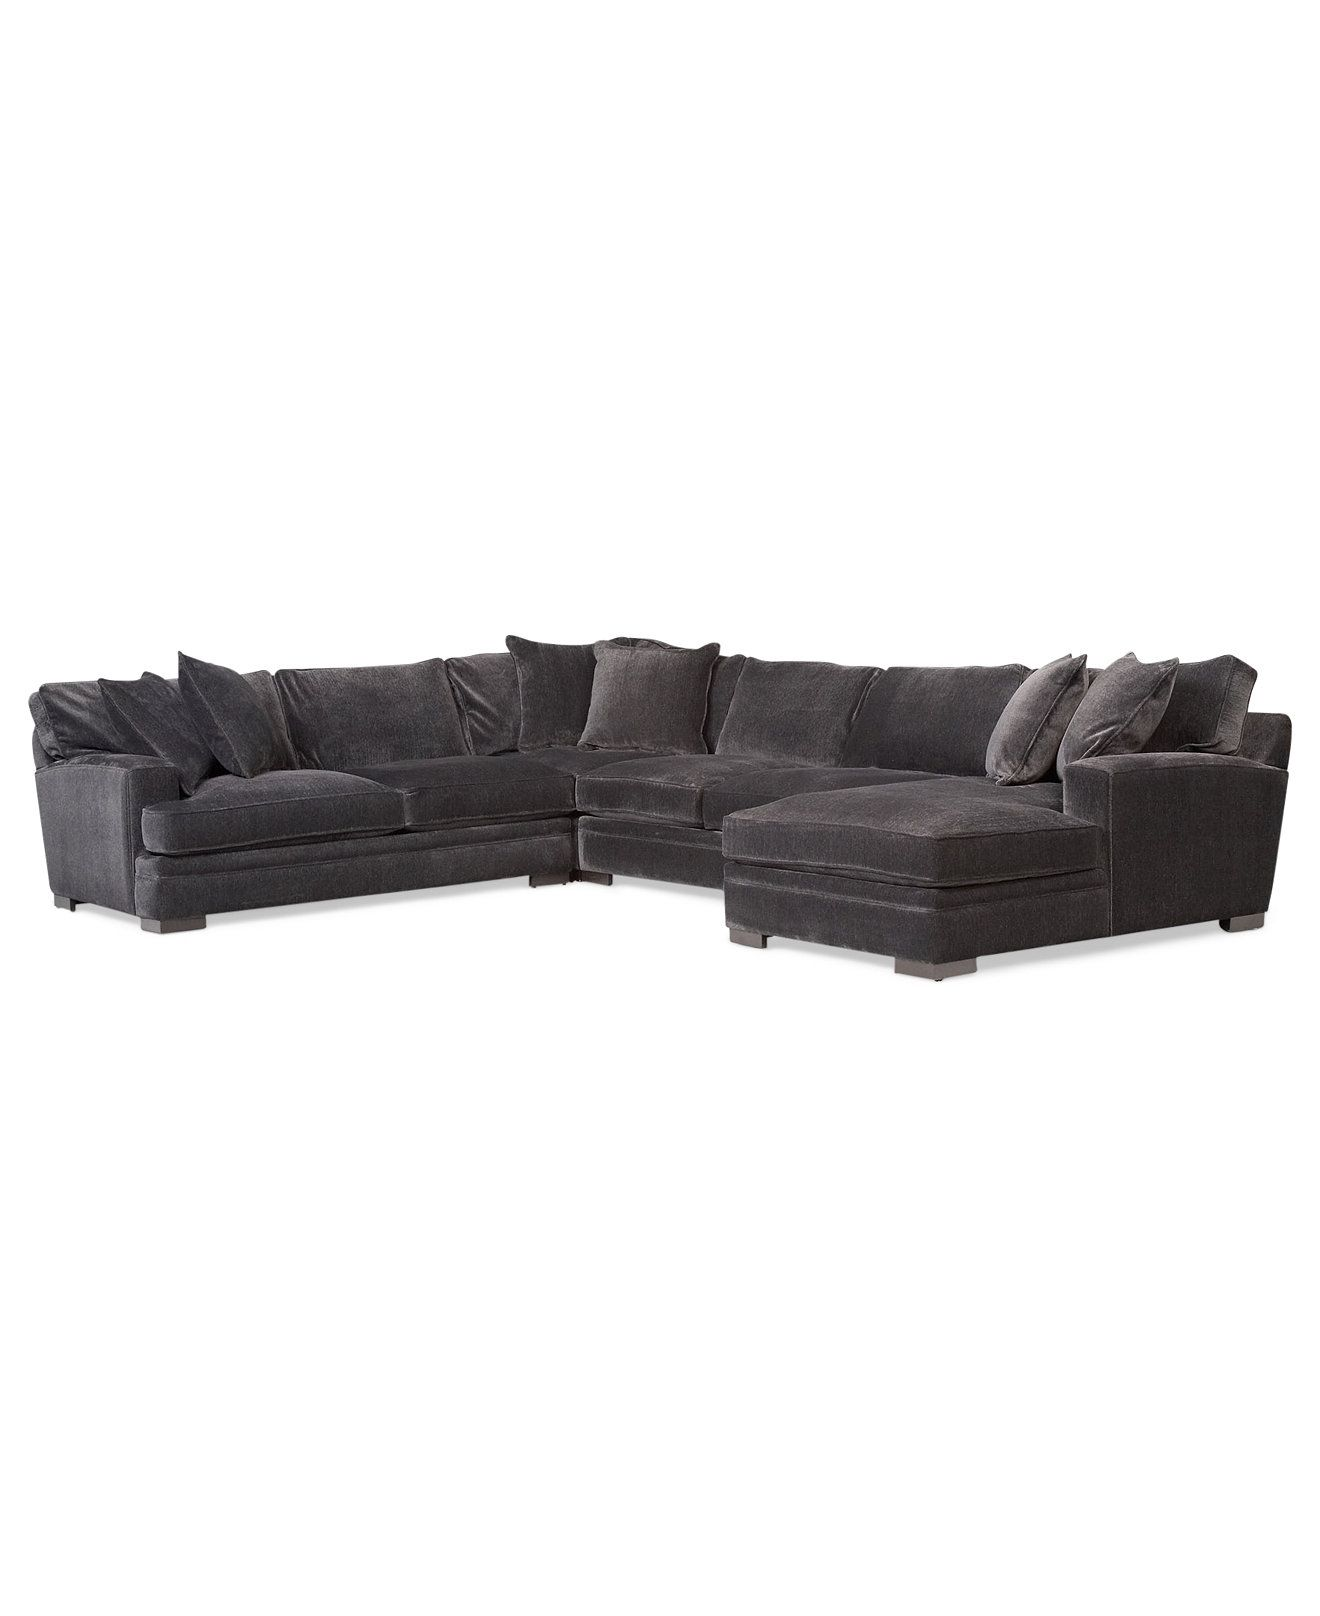 Teddy Fabric 4 Piece Chaise Sectional Sofa   Couches U0026 Sofas   Furniture    Macyu0027s